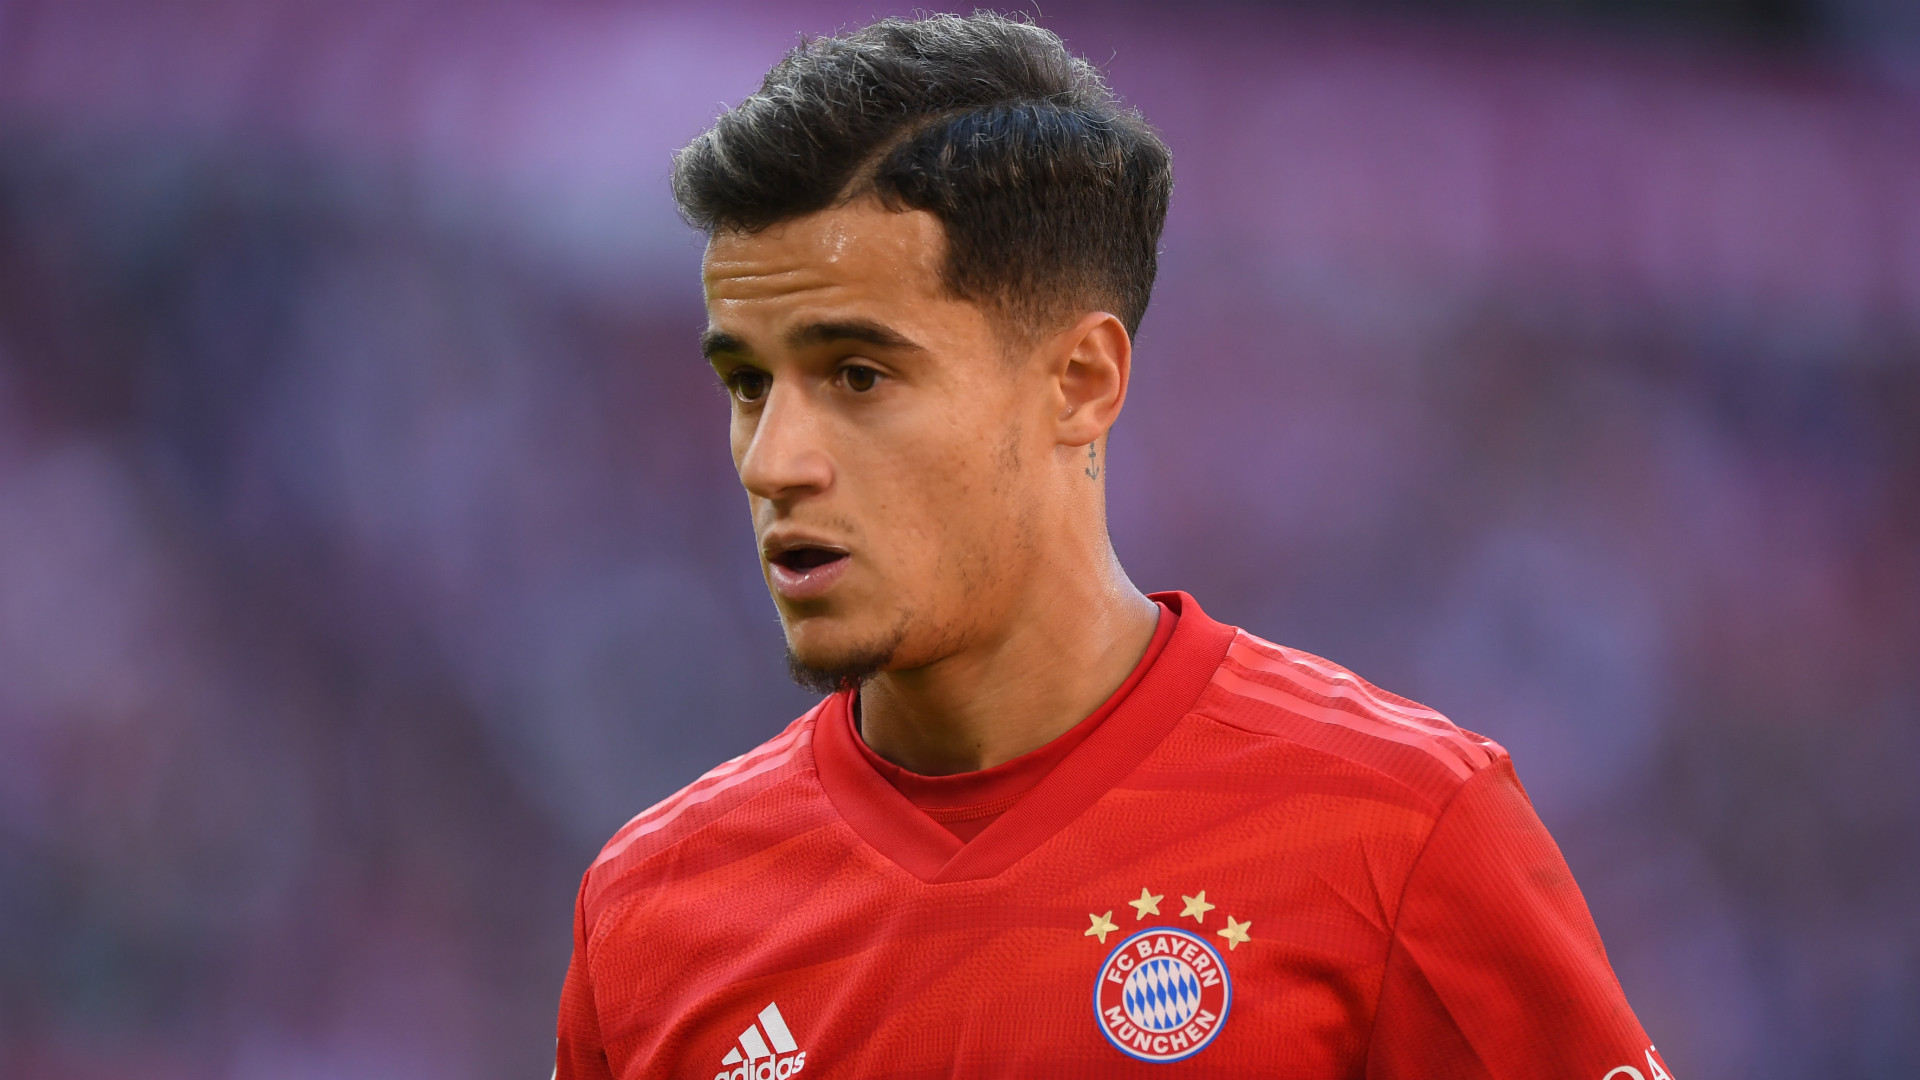 Transfer news and rumours LIVE: Barcelona set €80m asking price for Coutinho